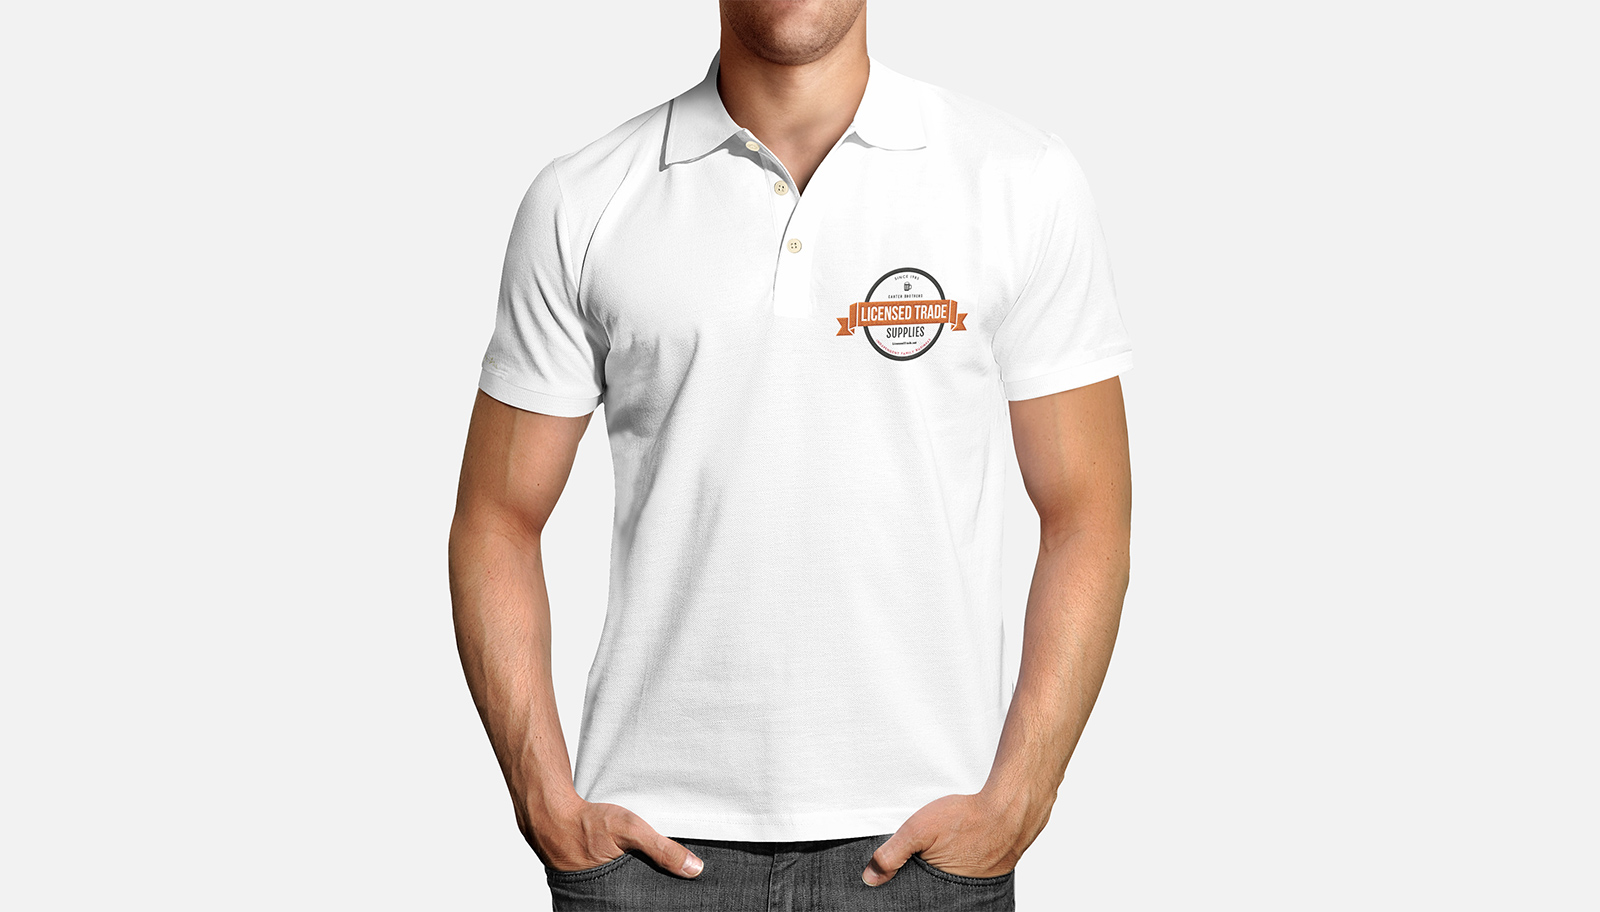 Licensed Trade polo shirt